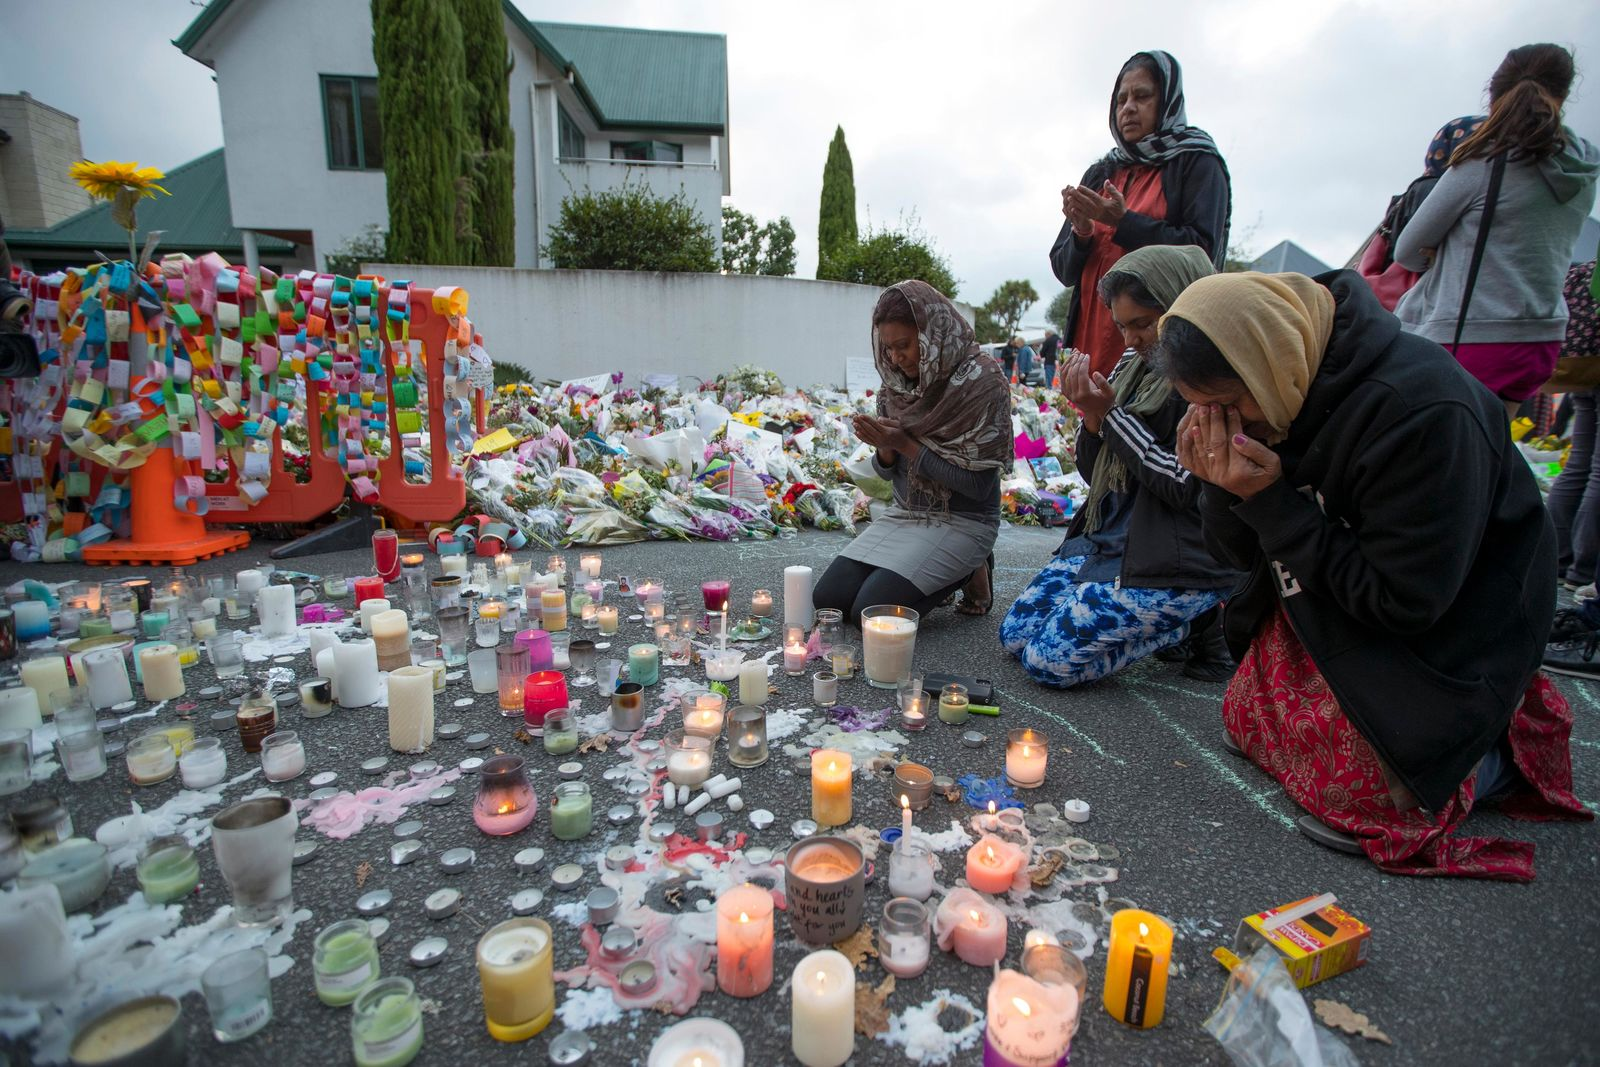 People mourn at a makeshift memorial site near the Al Noor mosque in Christchurch, New Zealand, Tuesday, March 19, 2019. (AP Photo/Vincent Thian)